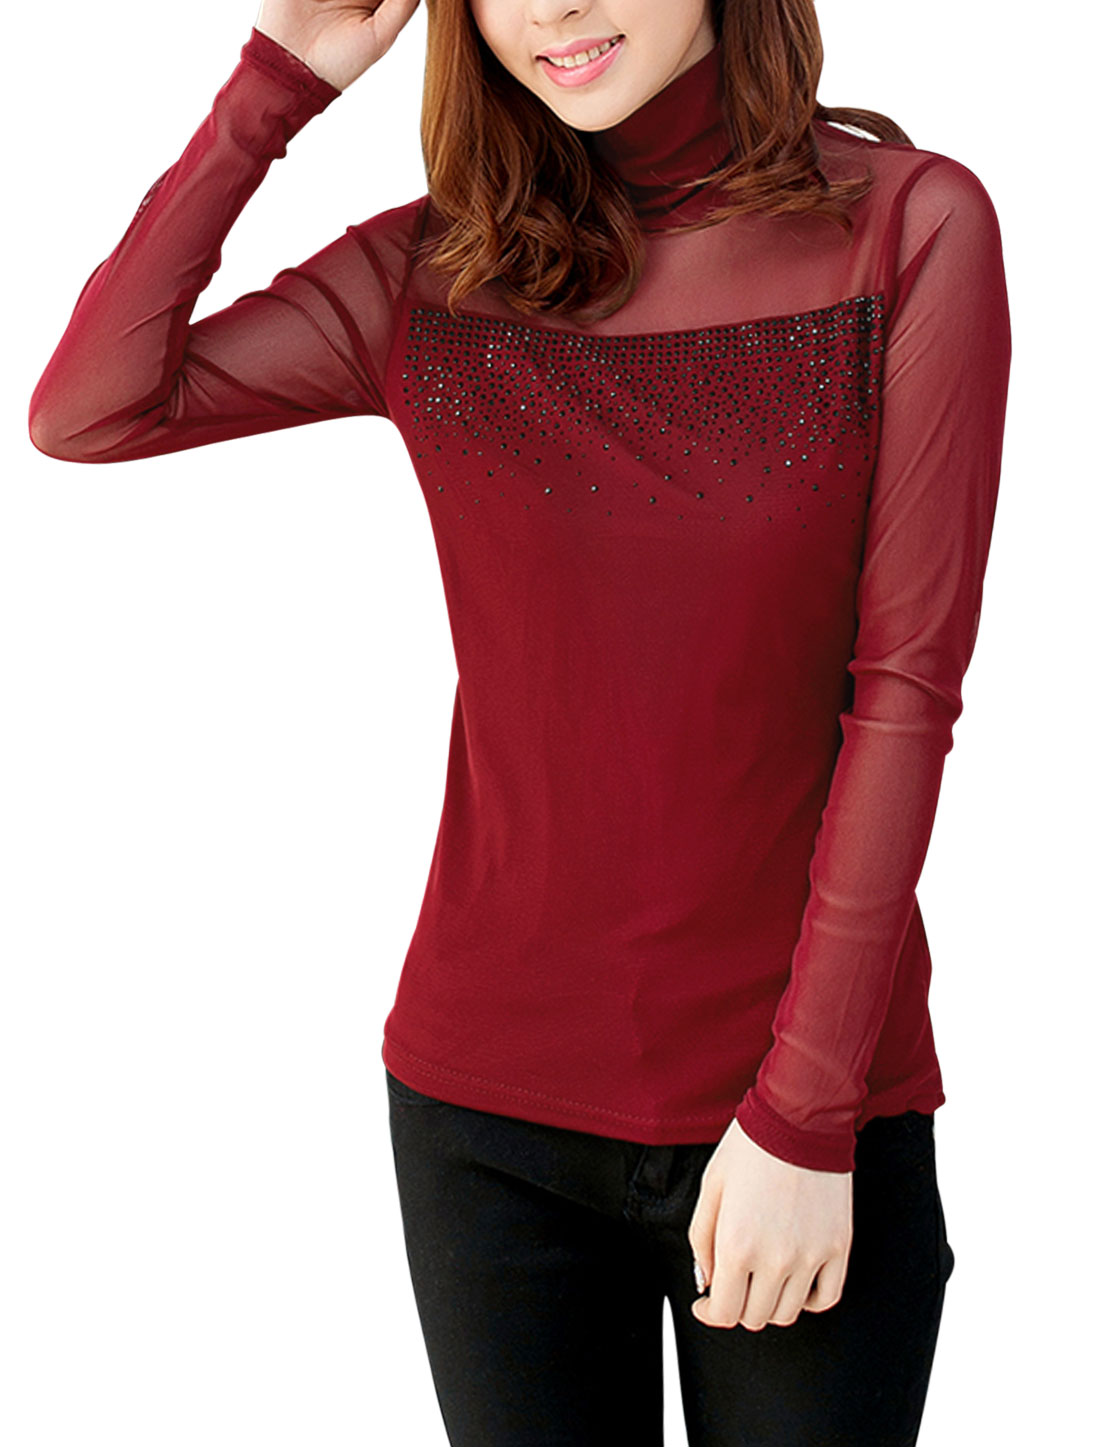 Women Beaded Embellished See Through Sleeve Sexy Top Warm Red M